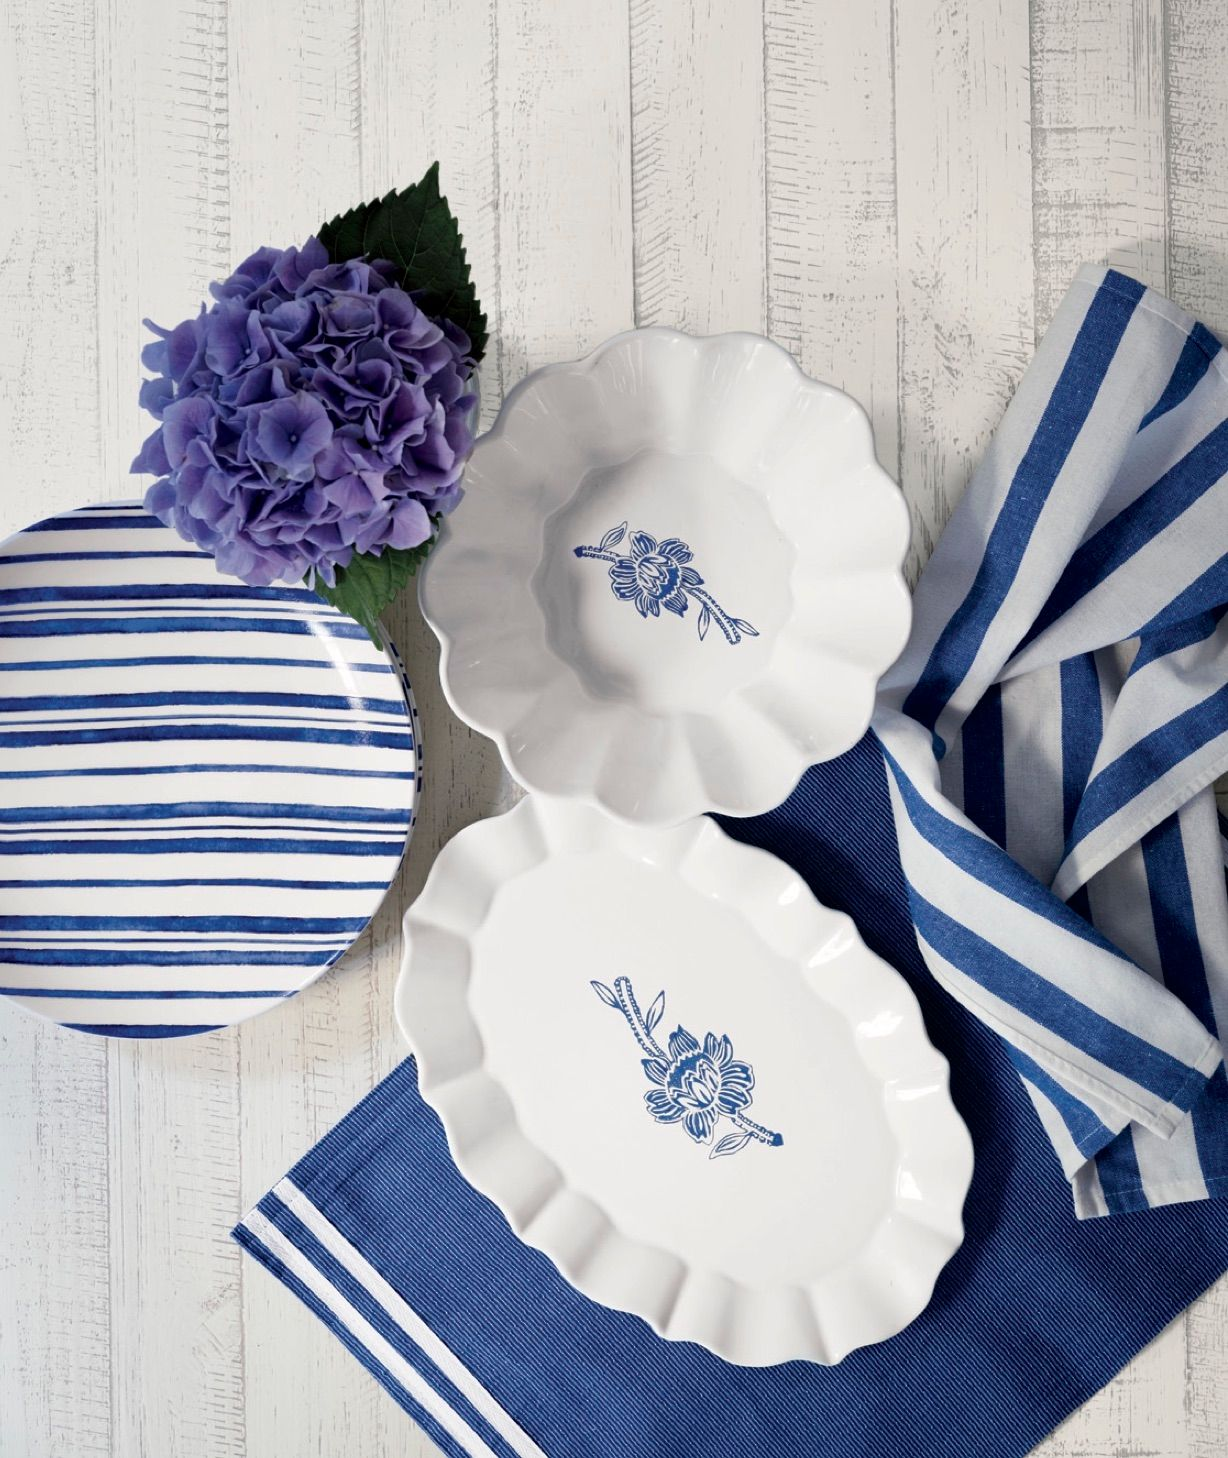 Seaside Plates 2 copy.jpg